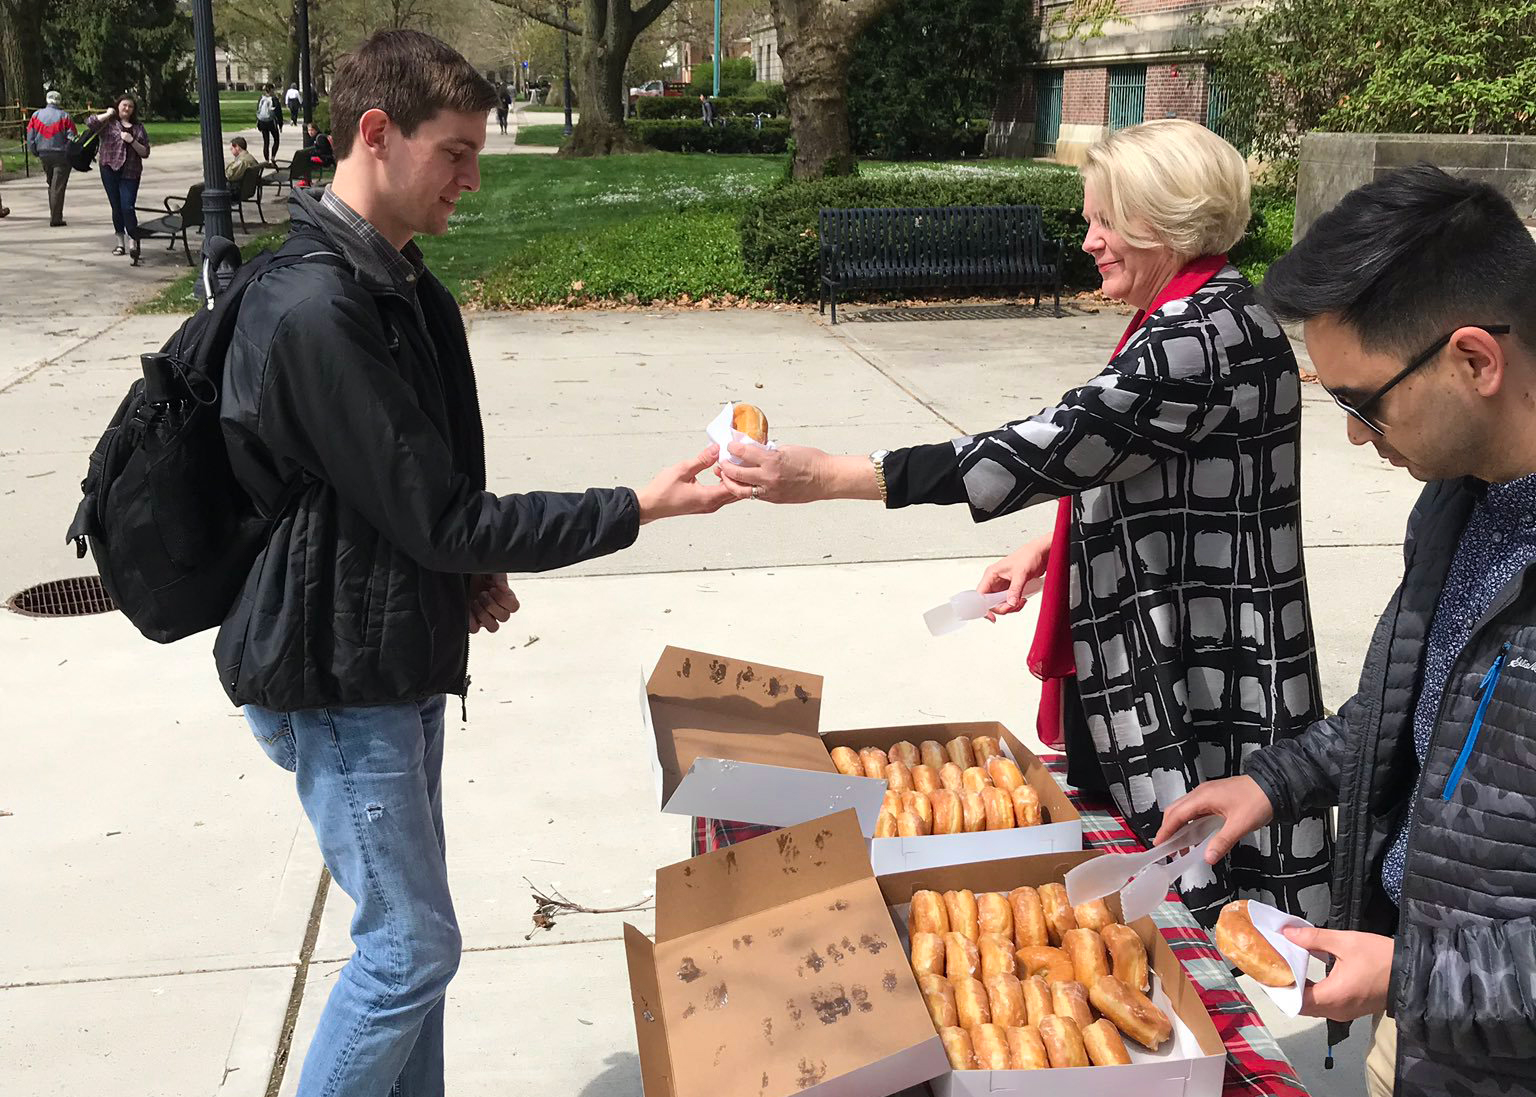 Dean giving out buckeye donuts